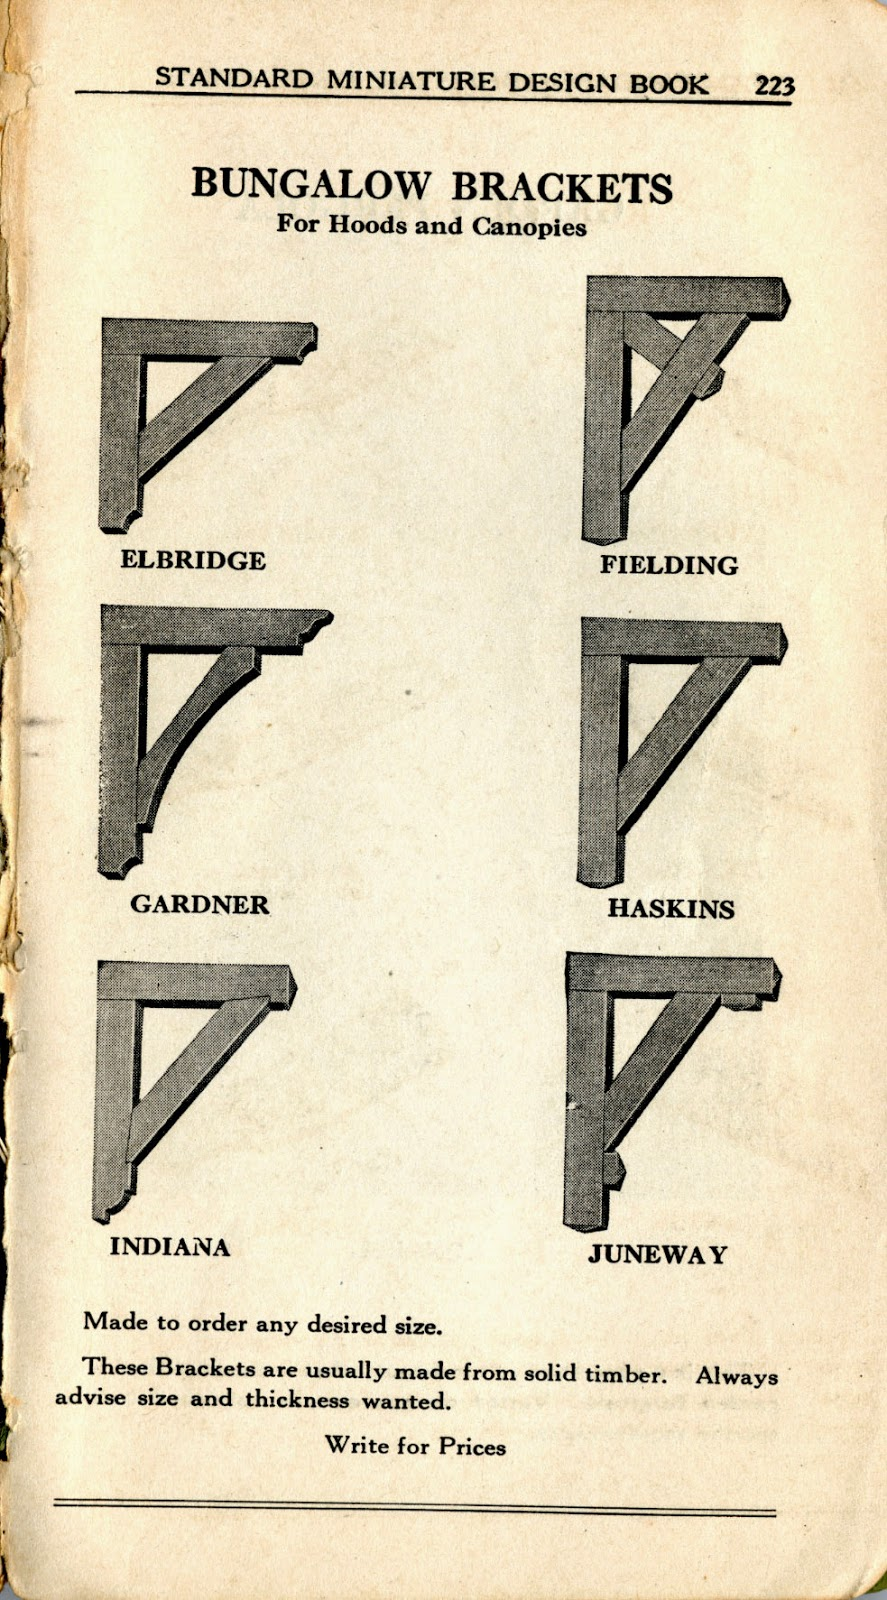 Architecture research bungalow elements for Architectural corbels and brackets